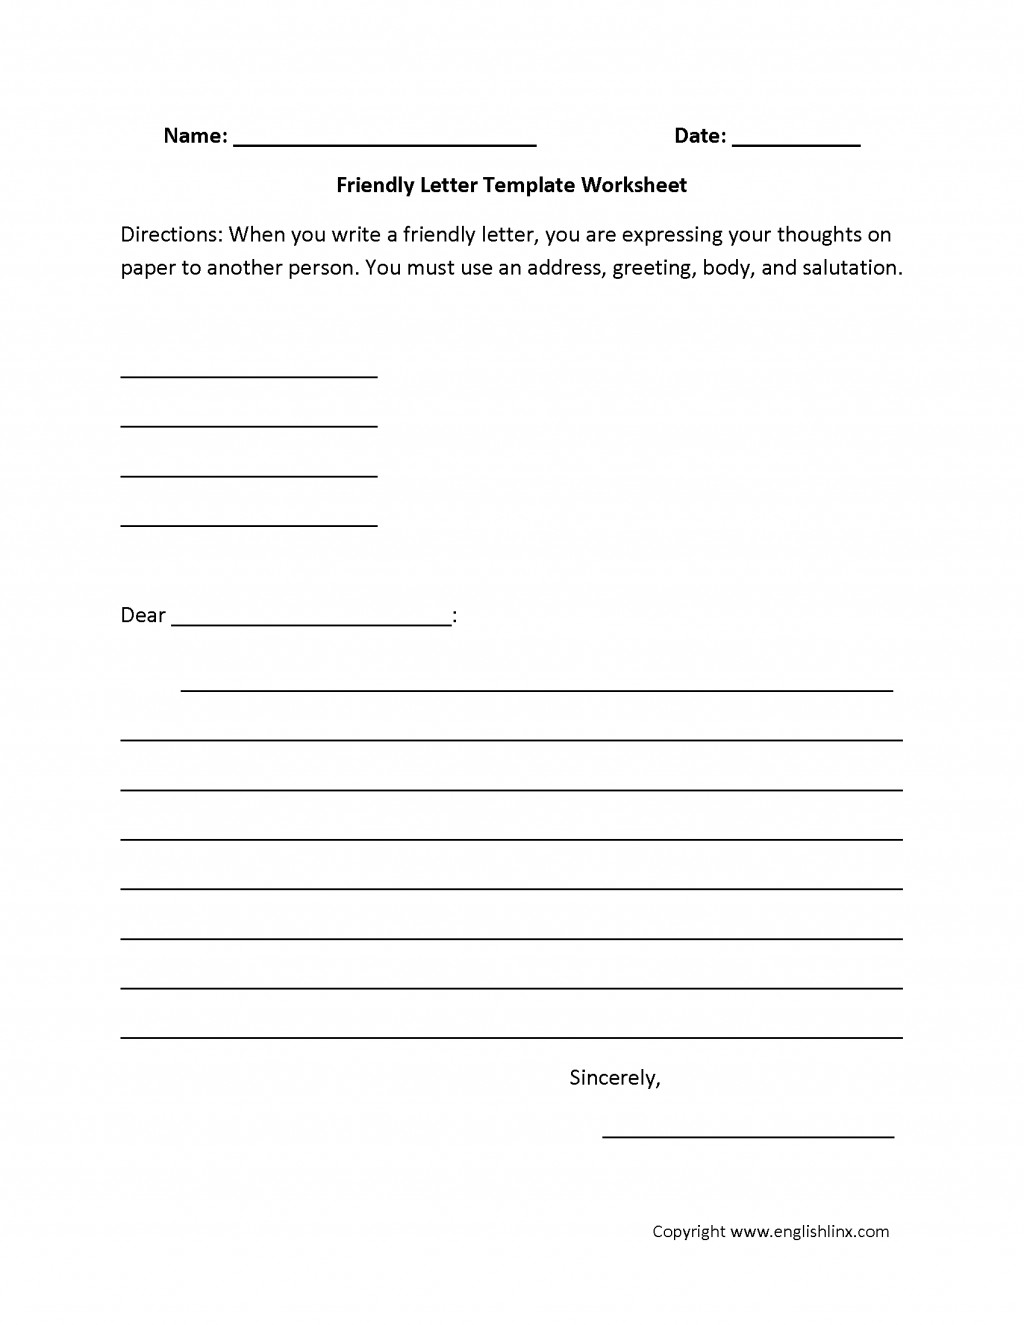 011 Essay Example About Friendly Stupendous Eco- Environment Child School Large